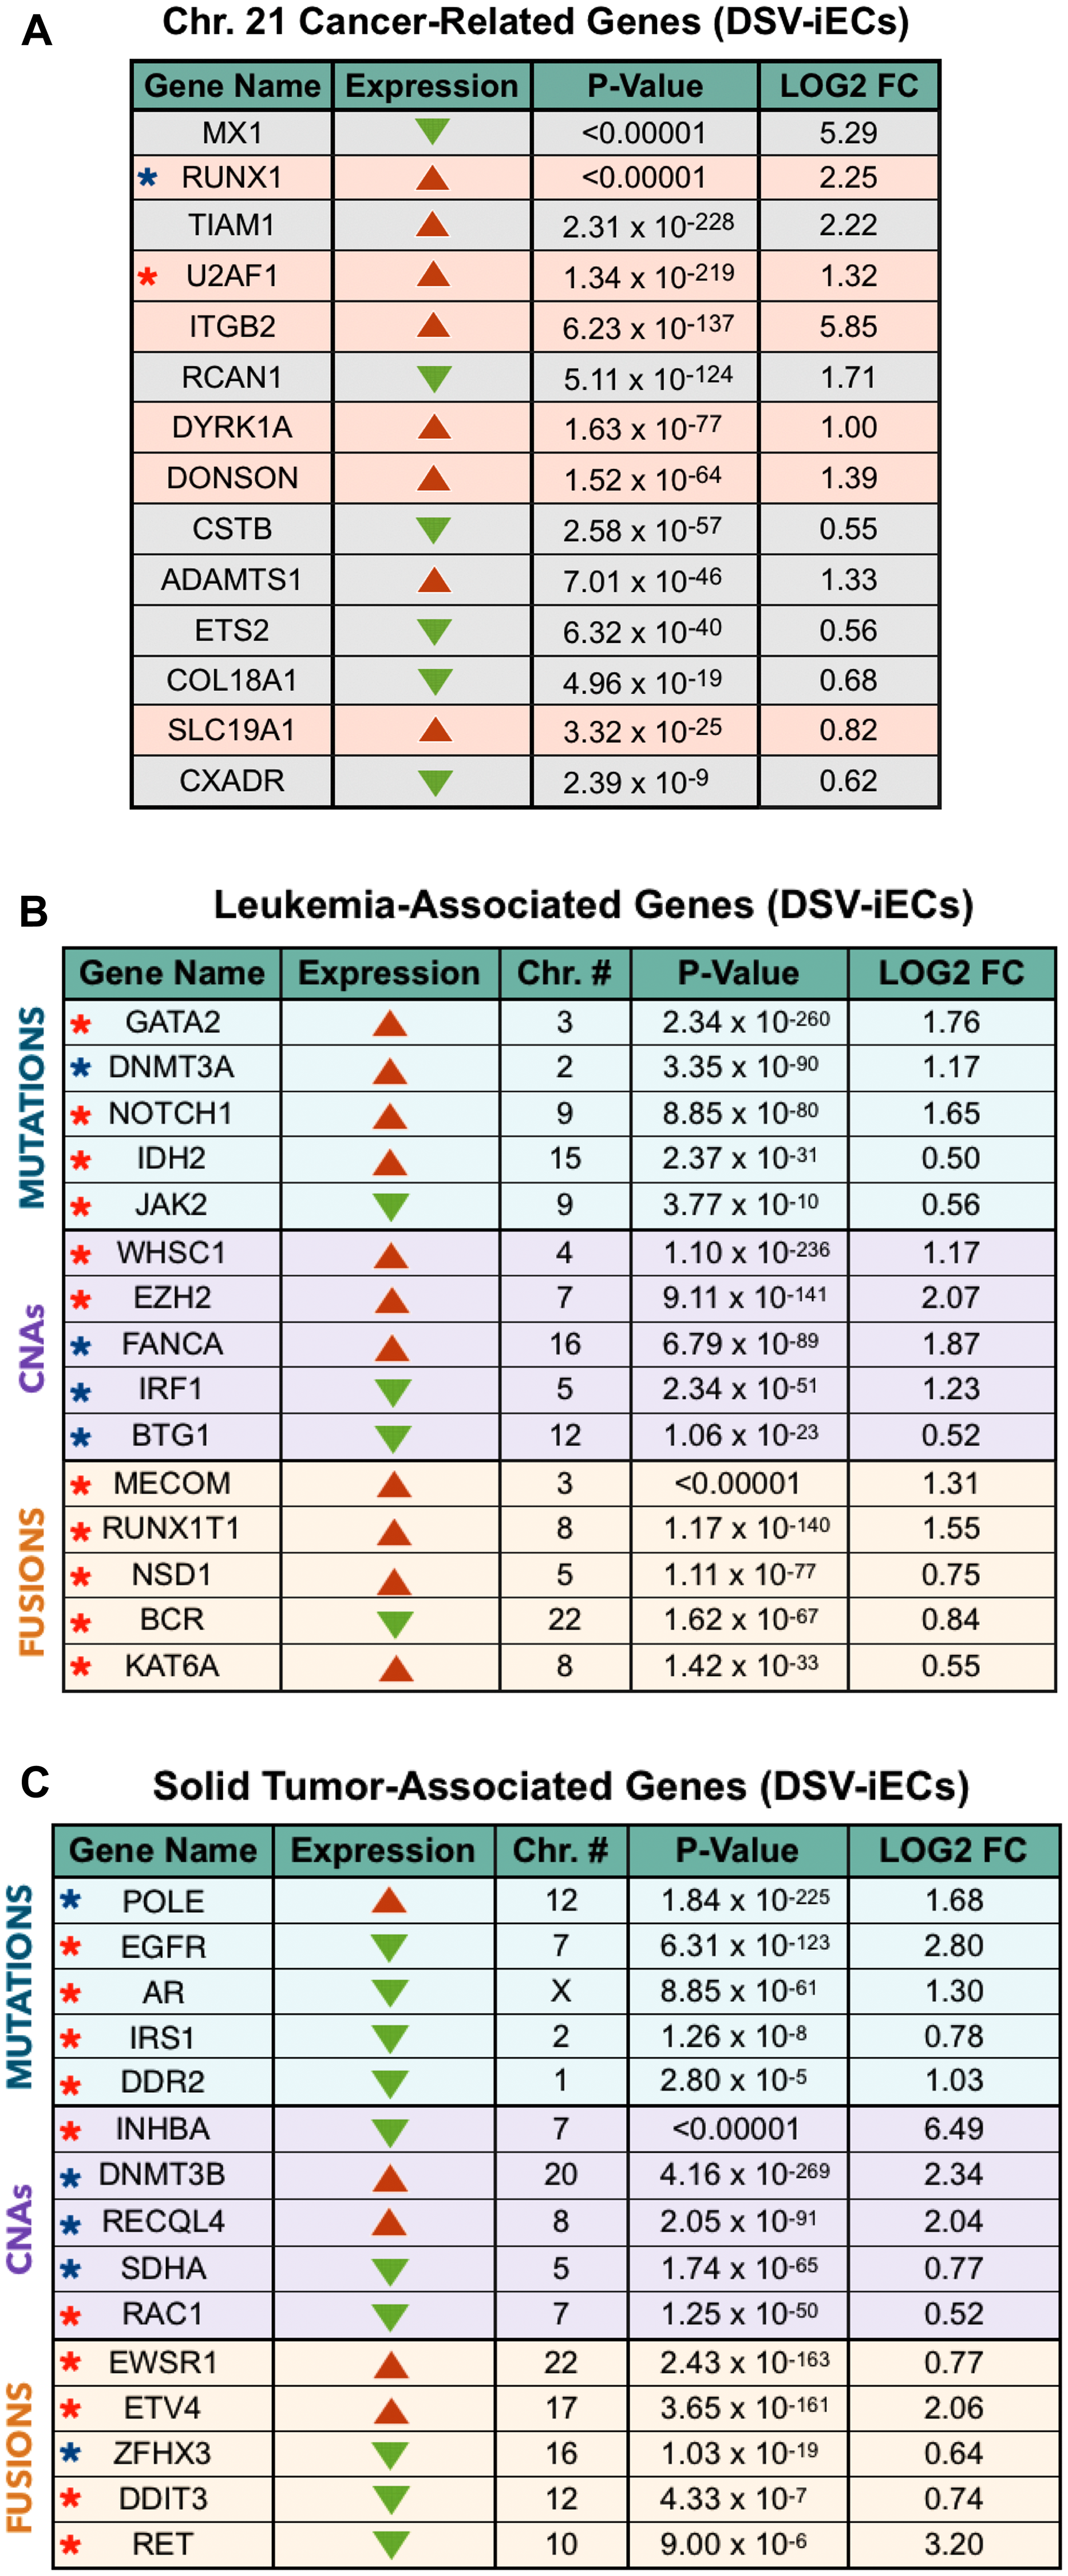 DS endothelial perspective on tumor development: chromosome 21 cancer-related genes, leukemia-associated genes, solid tumor-associated genes.